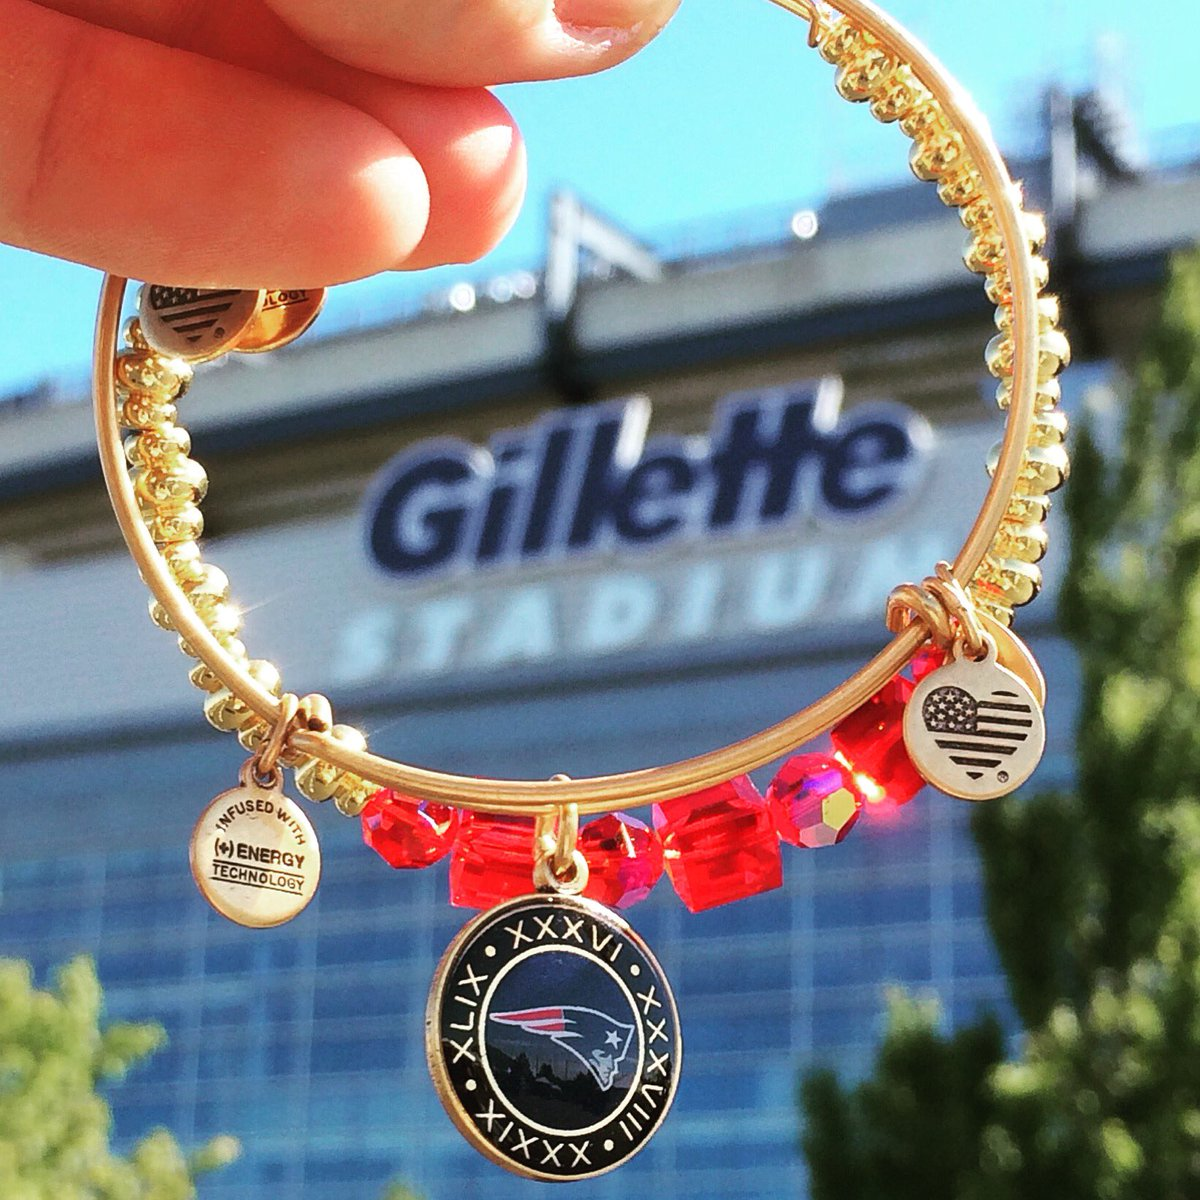 Follow us & RT by 11:59PM to enter-to-win this @alexandani @Patriots Super Bowl bangle! https://t.co/ocYvBeKZUm https://t.co/8czirG2E4m